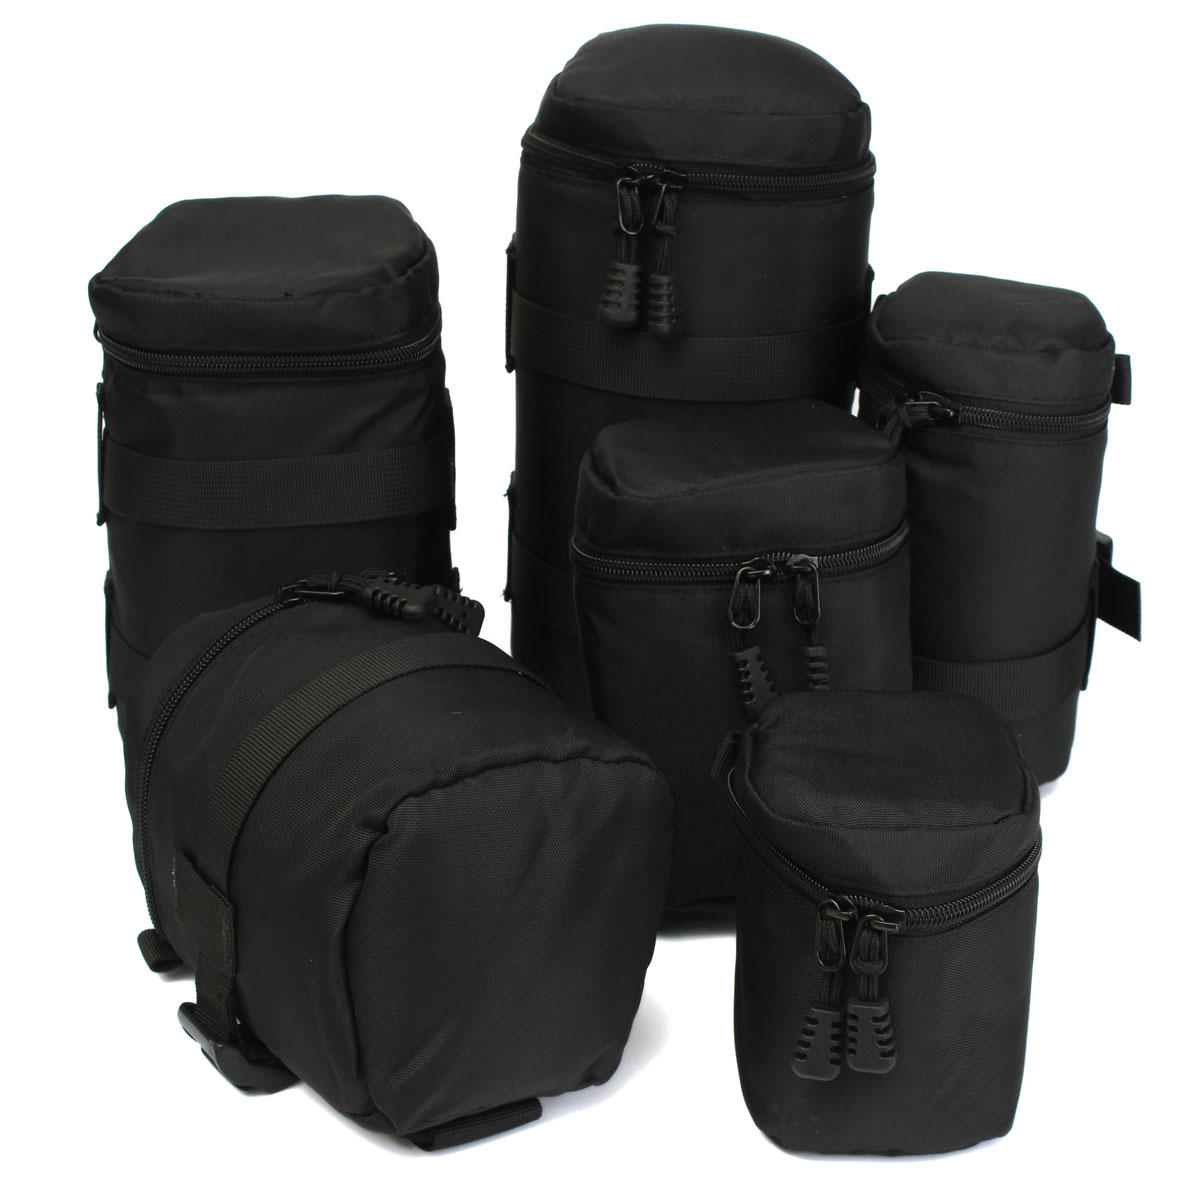 Waterproof Protective Camera Lens Bag Case Cover Pouch Protector